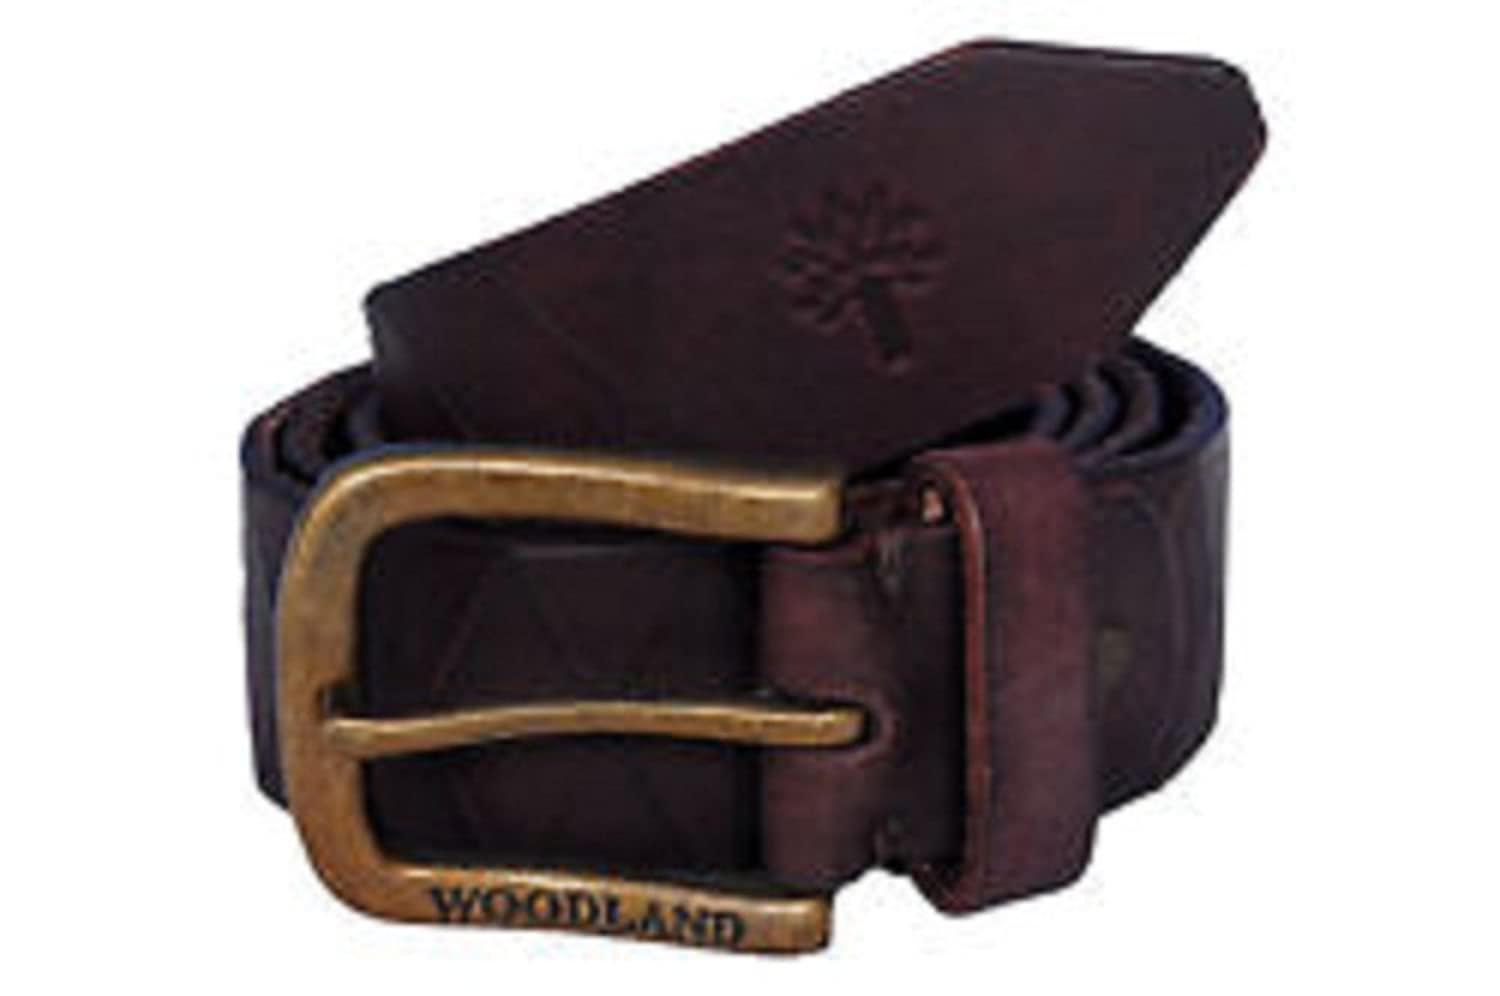 woodland leather belt woodland bt 1036008 brown 38